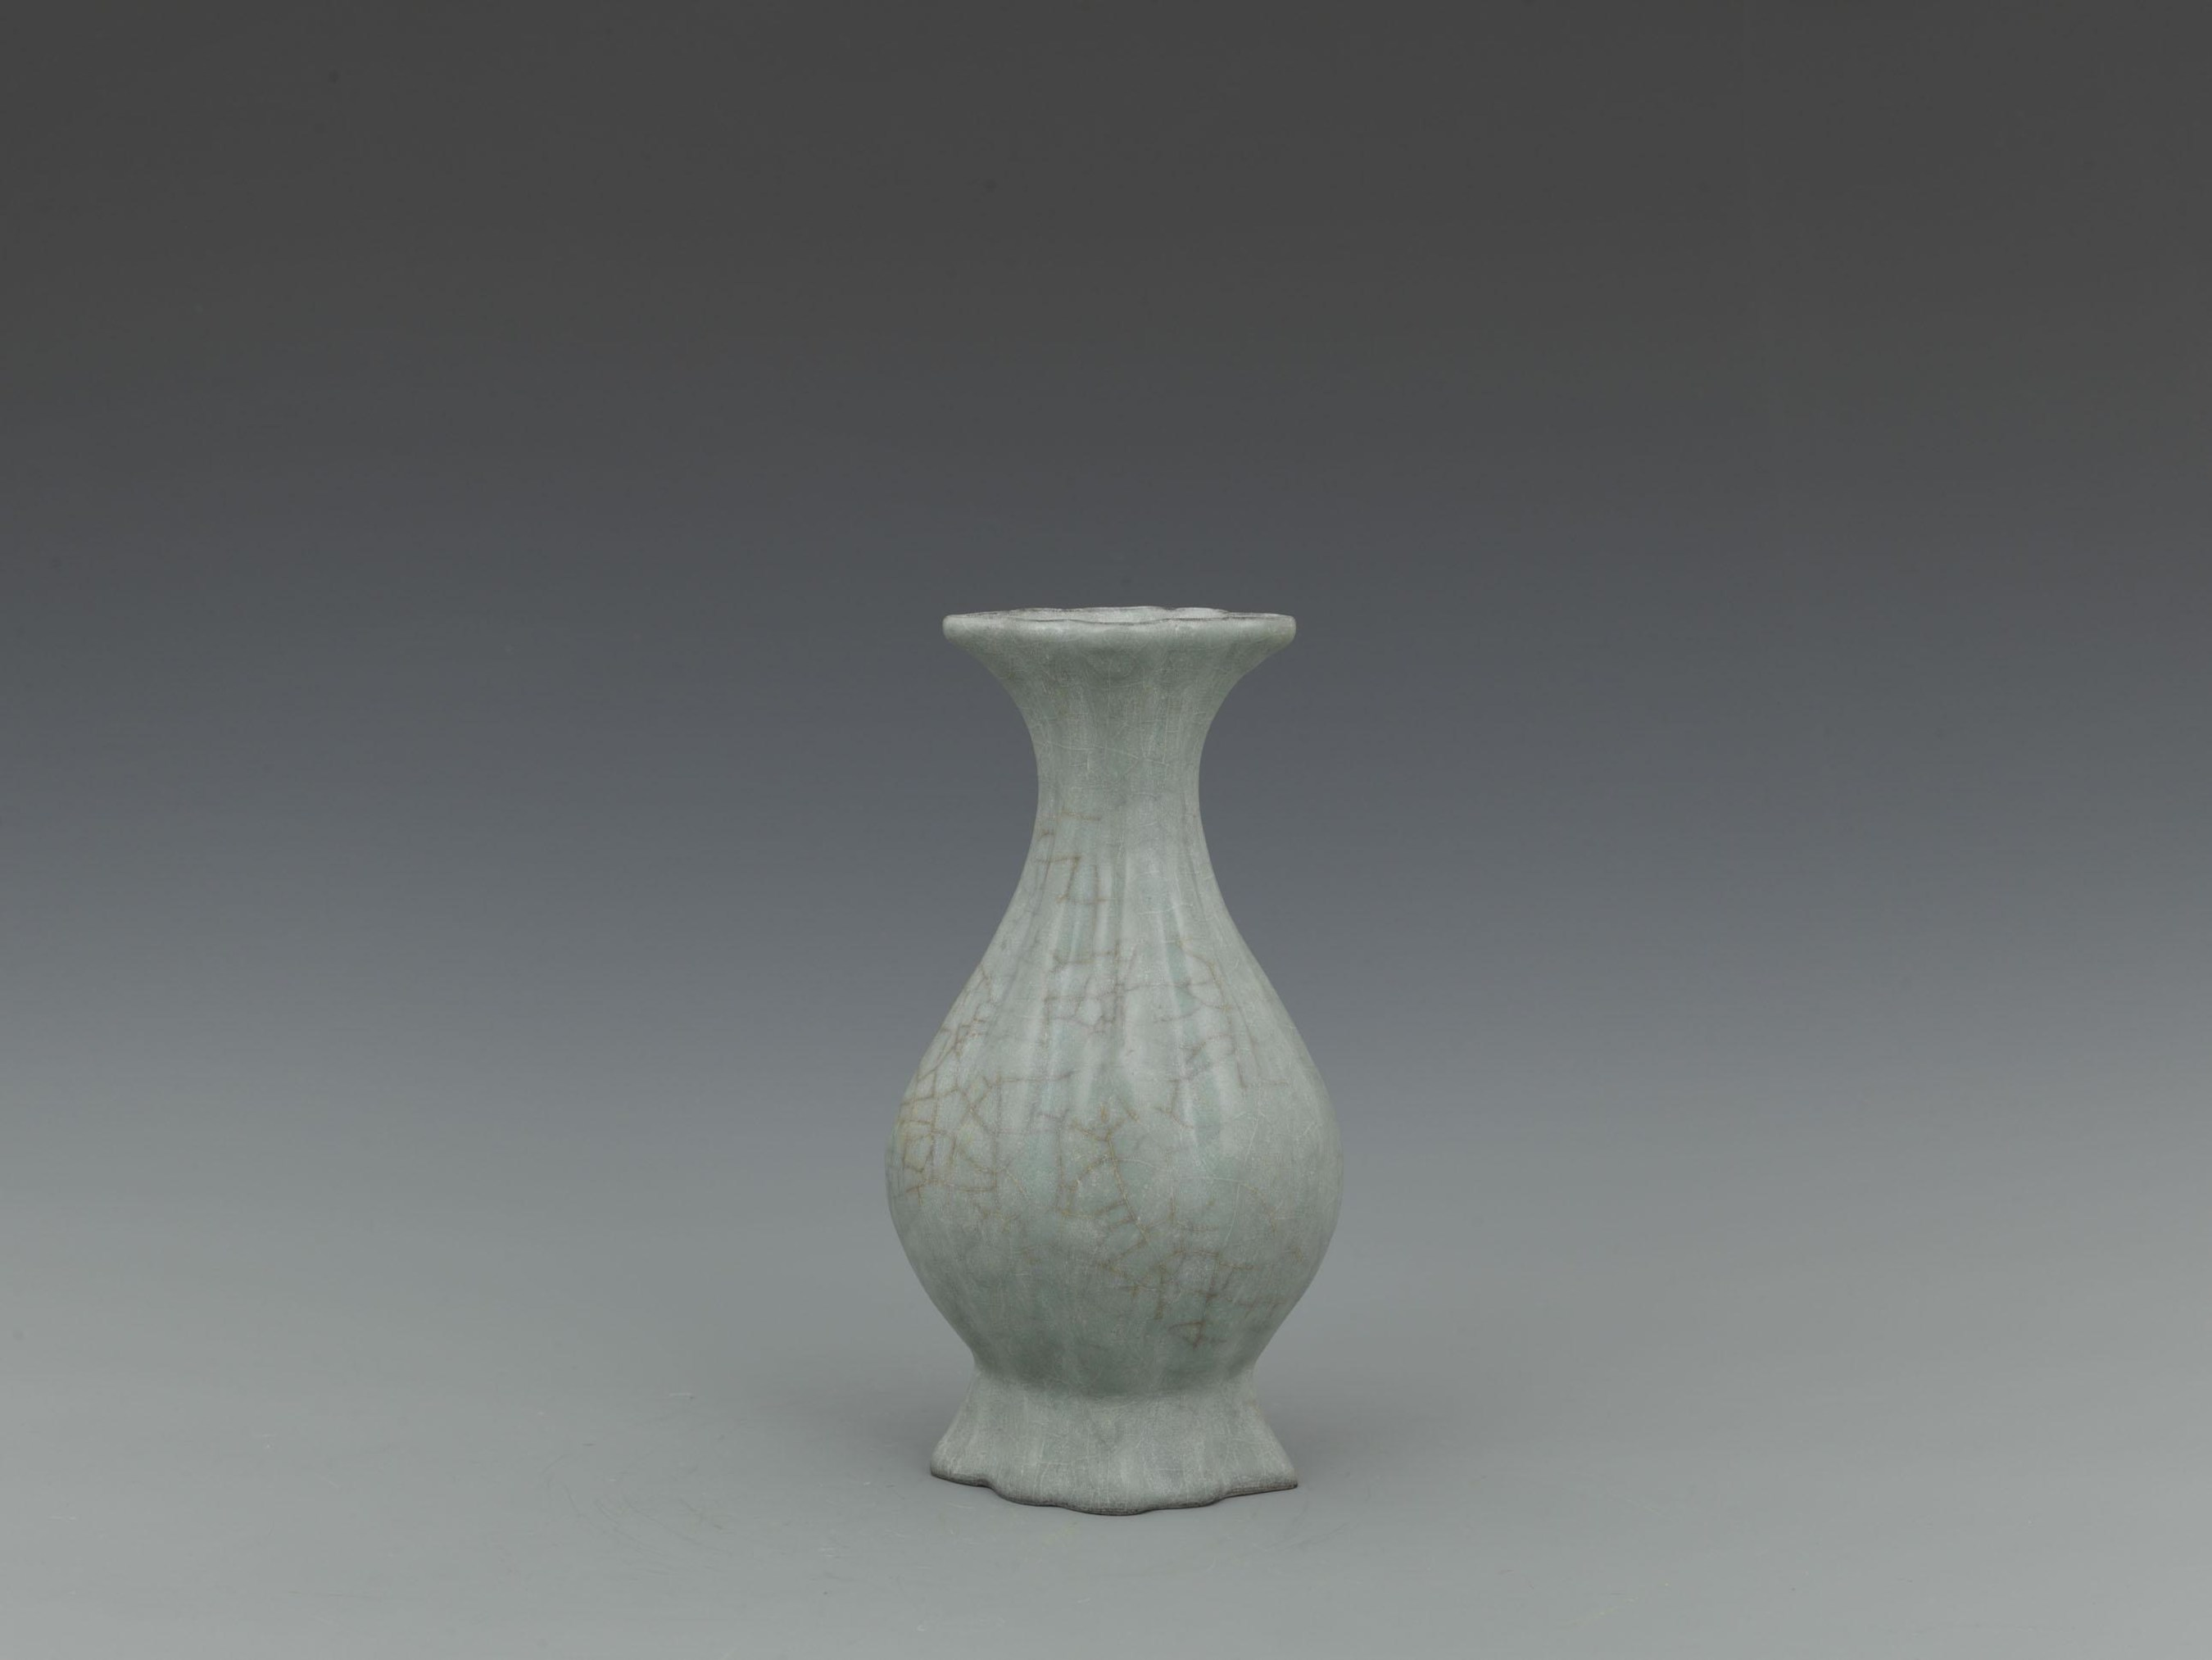 A Celadon Glazed Icy Crackle Bamboo Necked Bottle Vase (Lot Number 1618)